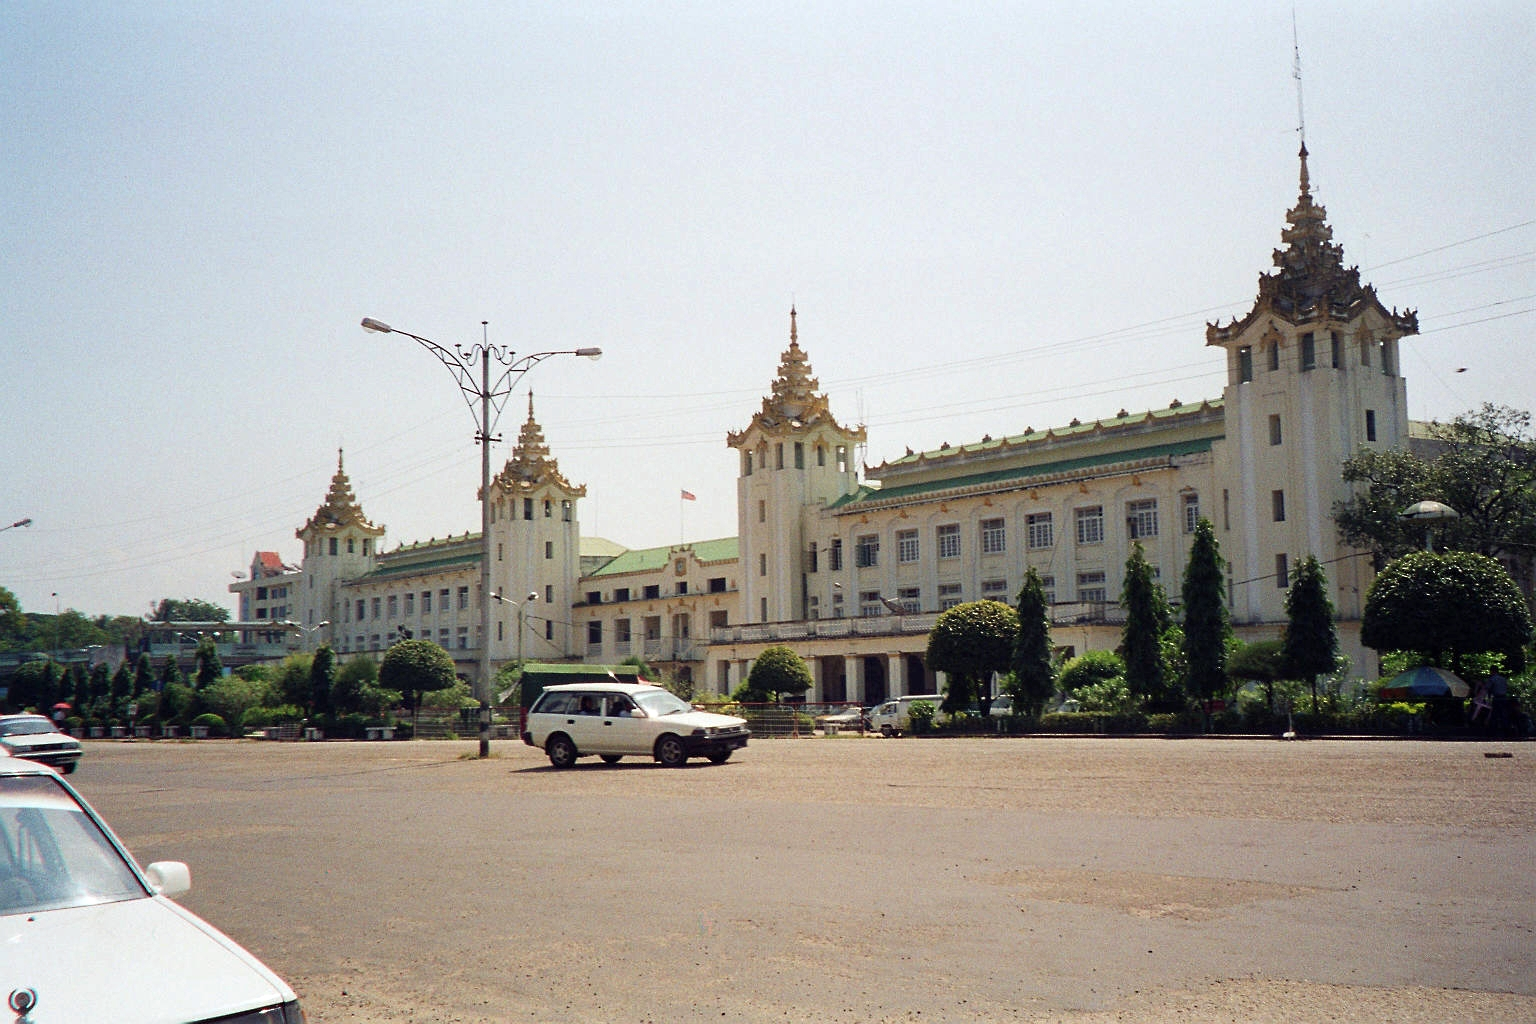 Yangon Myanmar  city photos gallery : Original file ‎ 1,536 × 1,024 pixels, file size: 896 KB, MIME type ...